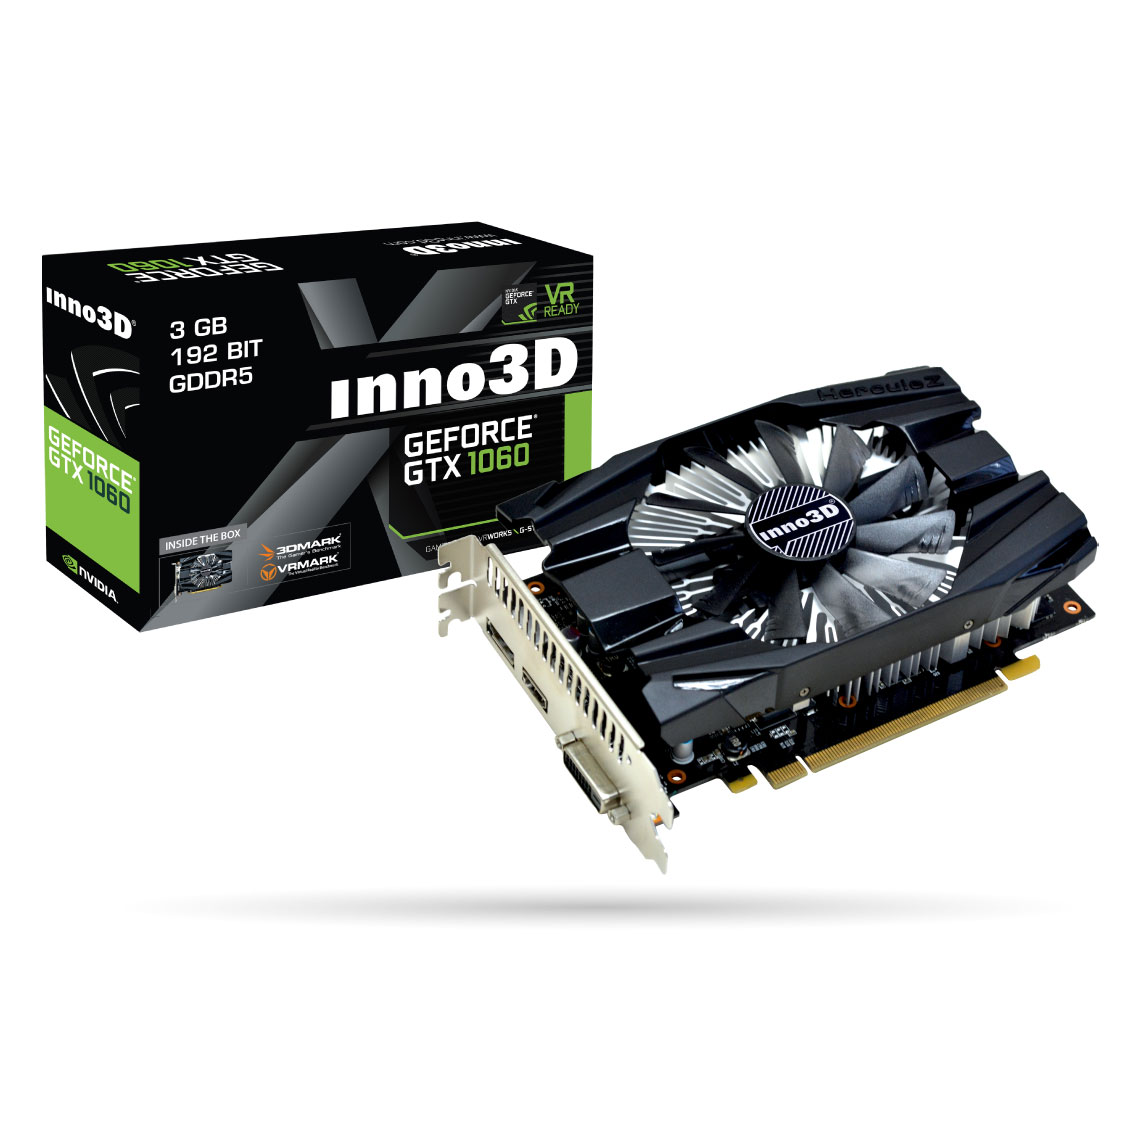 inno3d geforce gtx 1060 3gb compact carte graphique inno. Black Bedroom Furniture Sets. Home Design Ideas